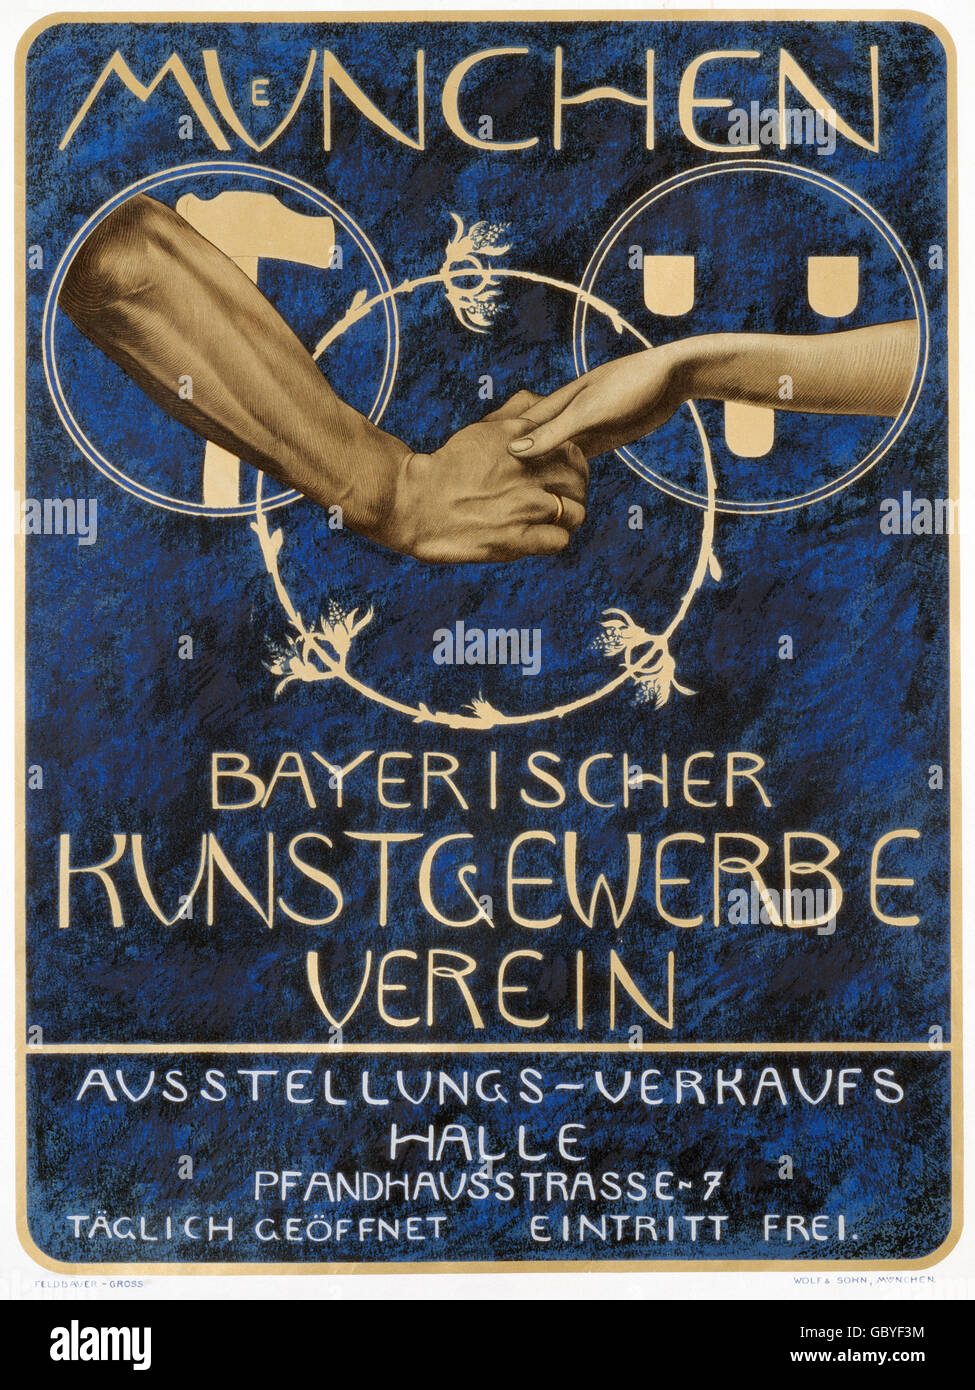 exhibitions, industry, exhibition of the Bavarian arts-and-crafts association, poster, Munich, circa 1900, Additional - Stock Image